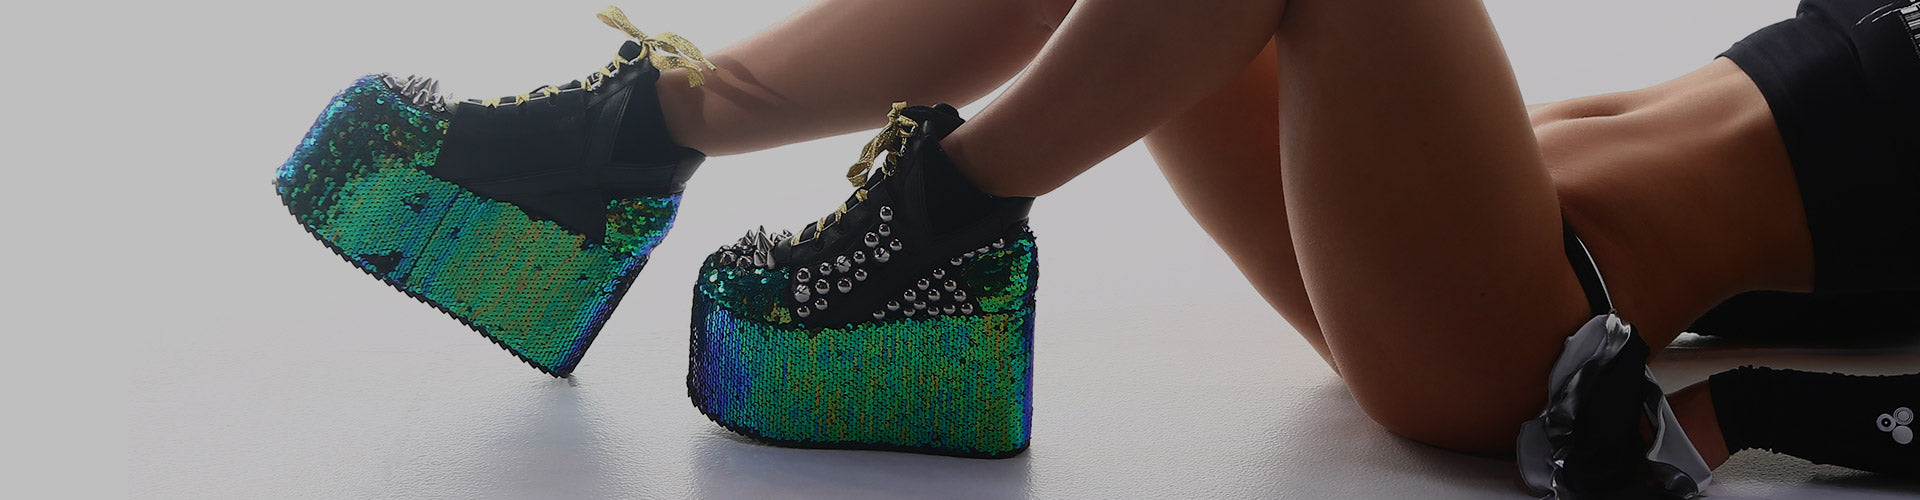 rave shoes for women